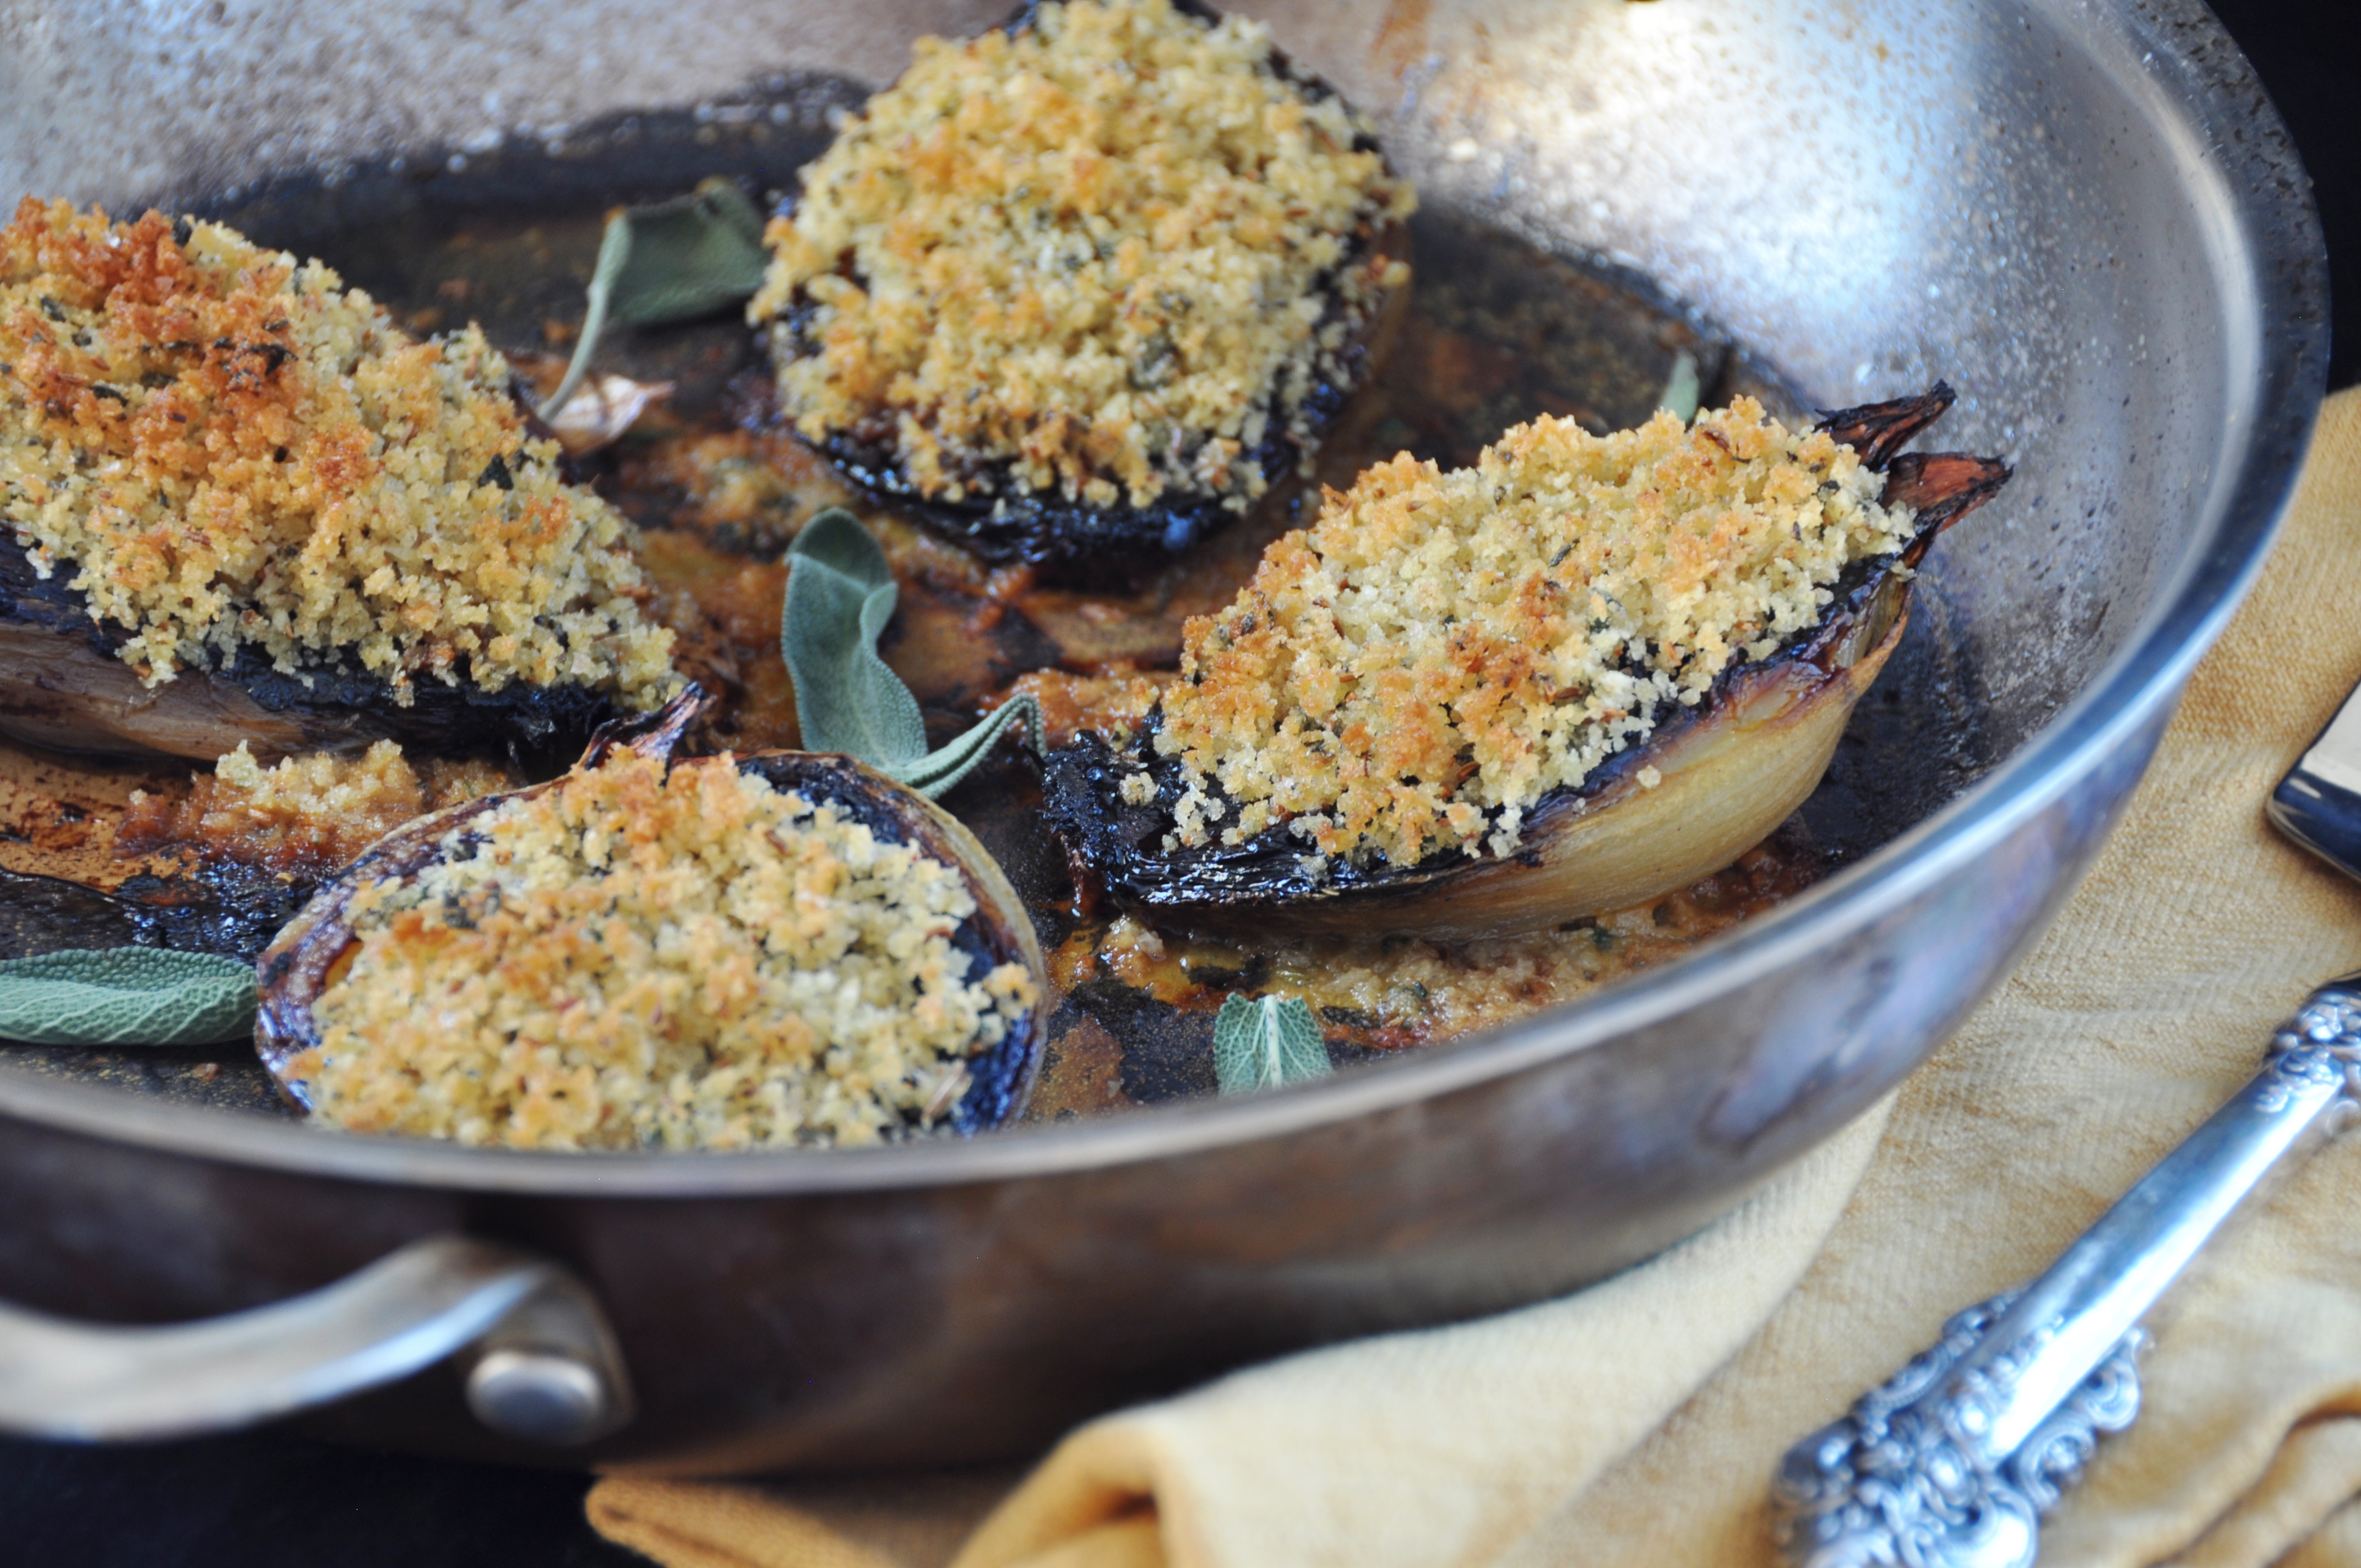 ... baked onions with fennel bread crumbs. This is total comfort food